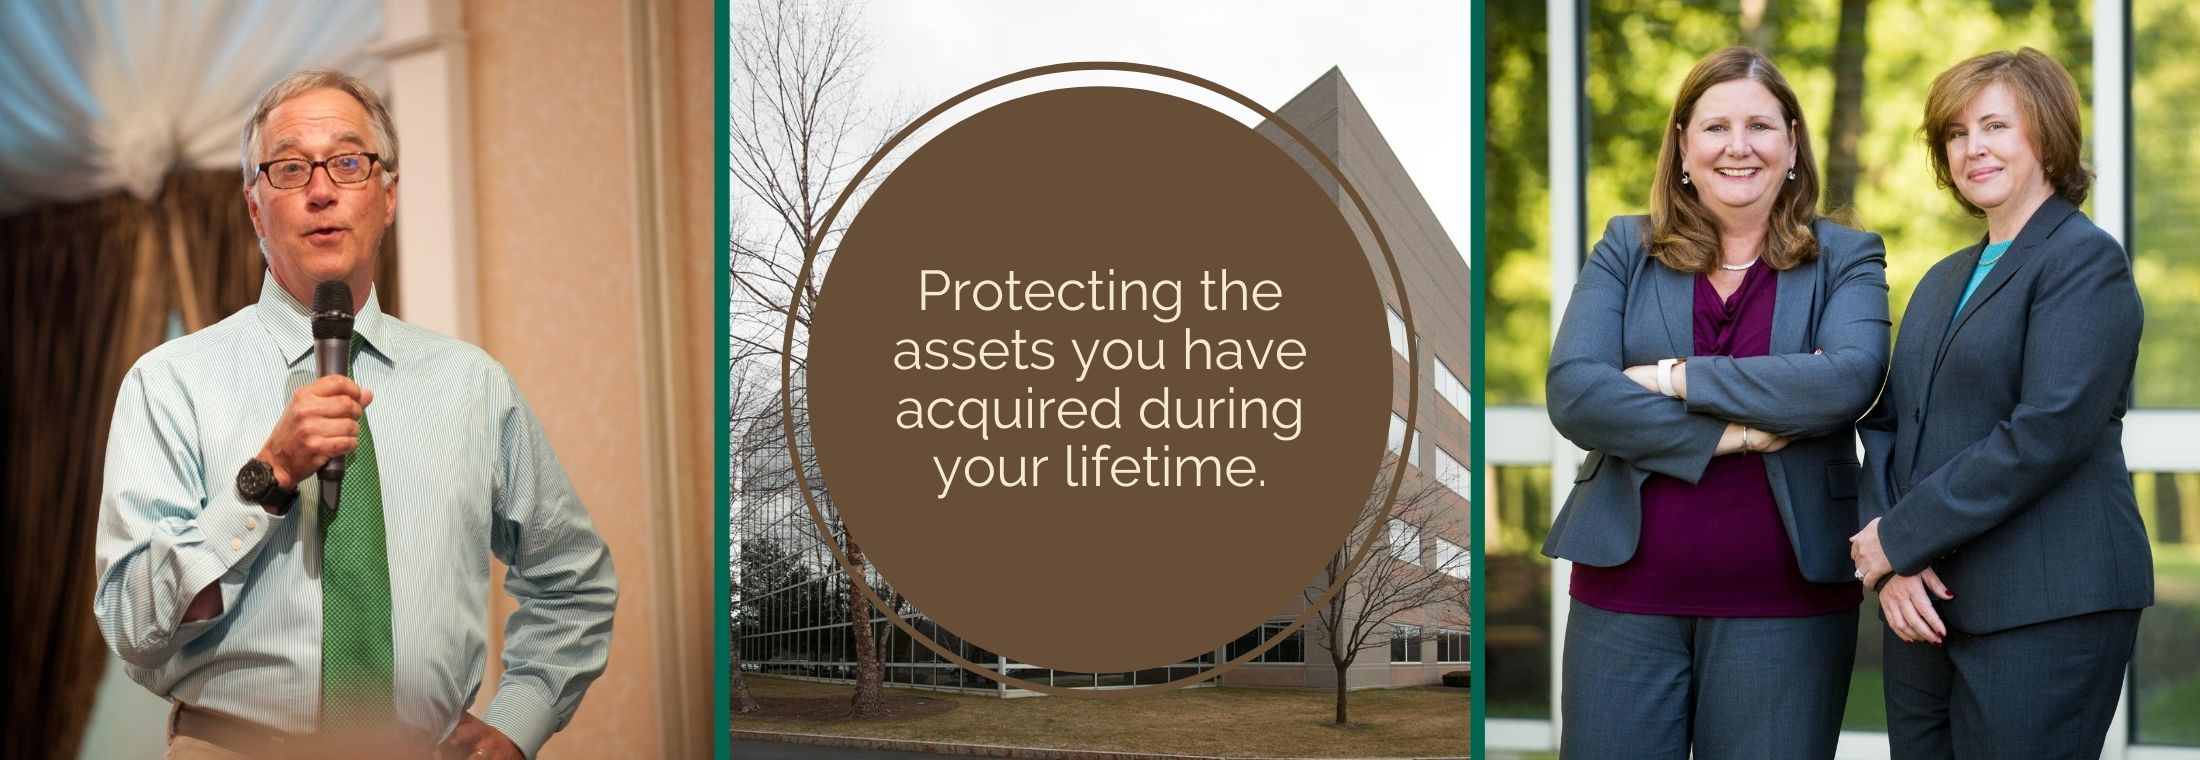 protecting the assets you have acquired during your lifetime